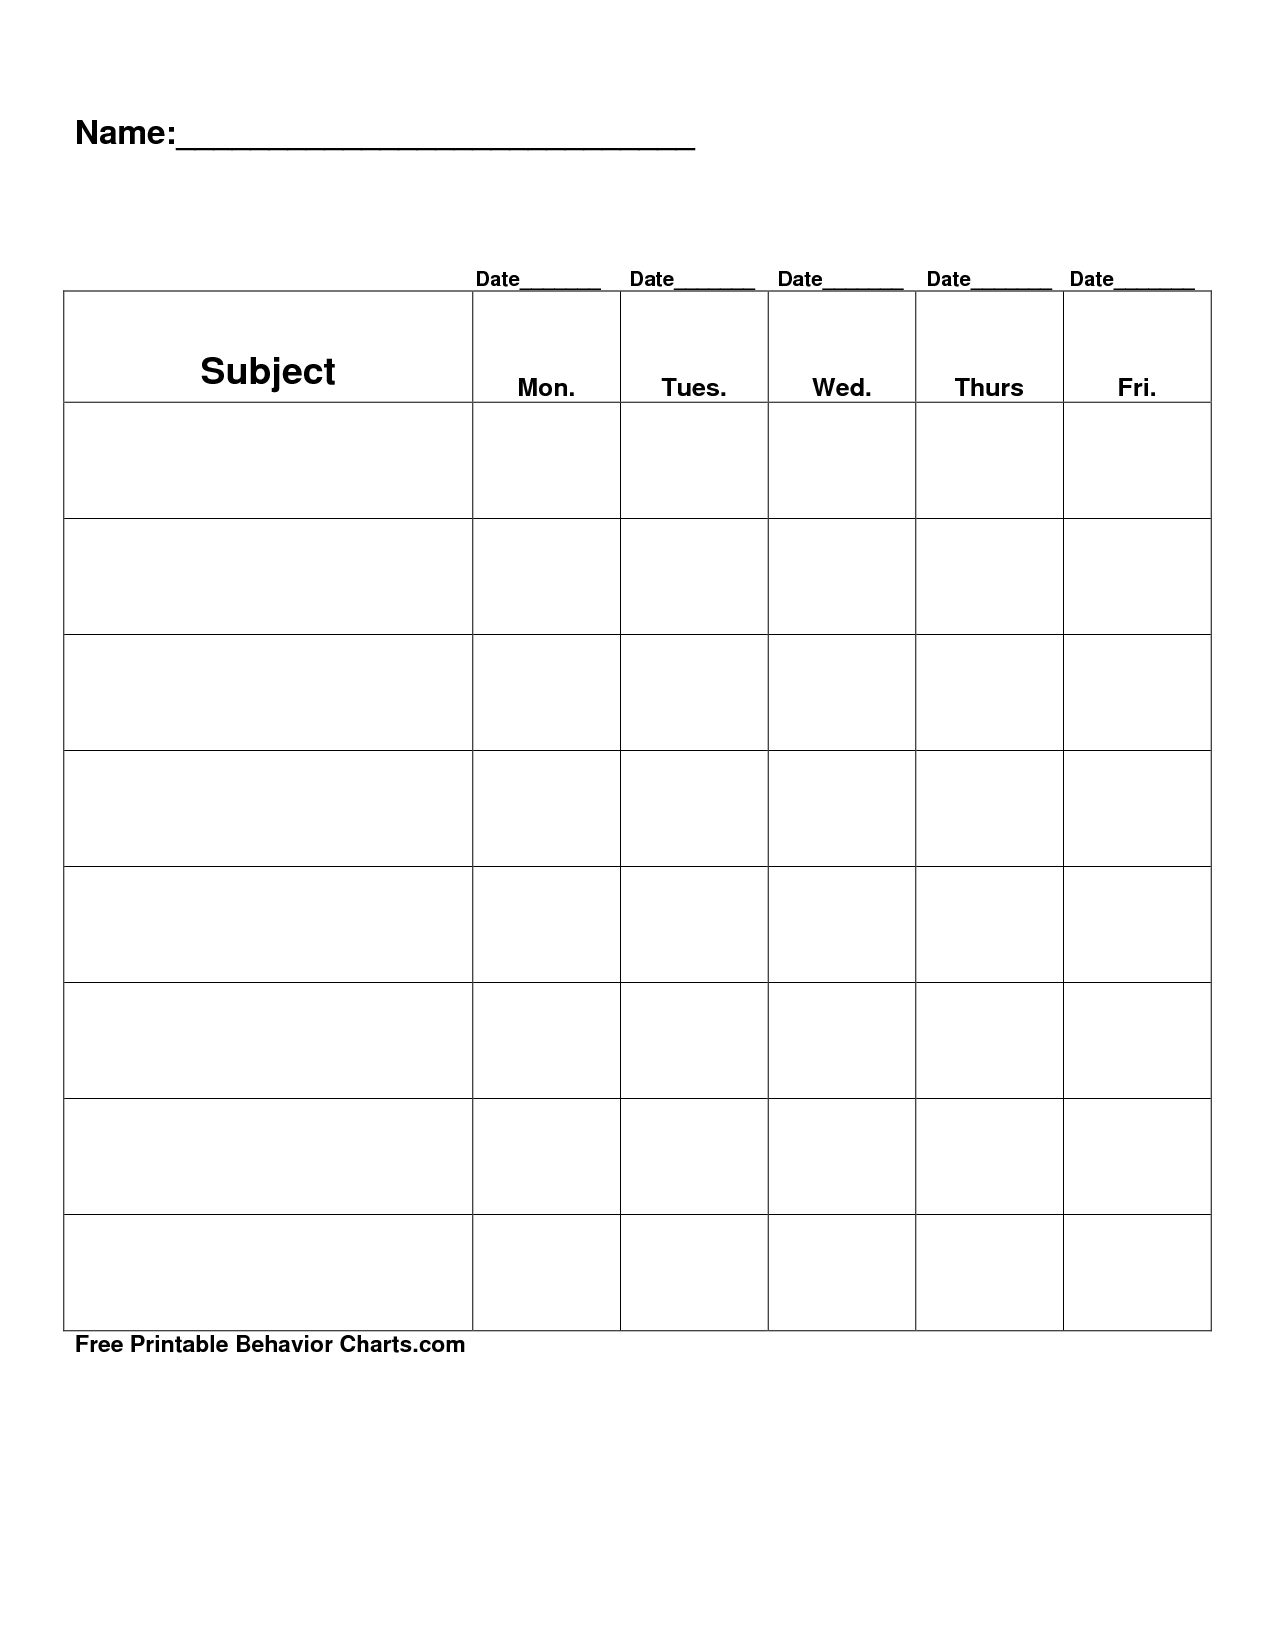 Free Printable Blank Charts | Free Printable Behavior Charts Com - Free Printable Incentive Charts For Teachers